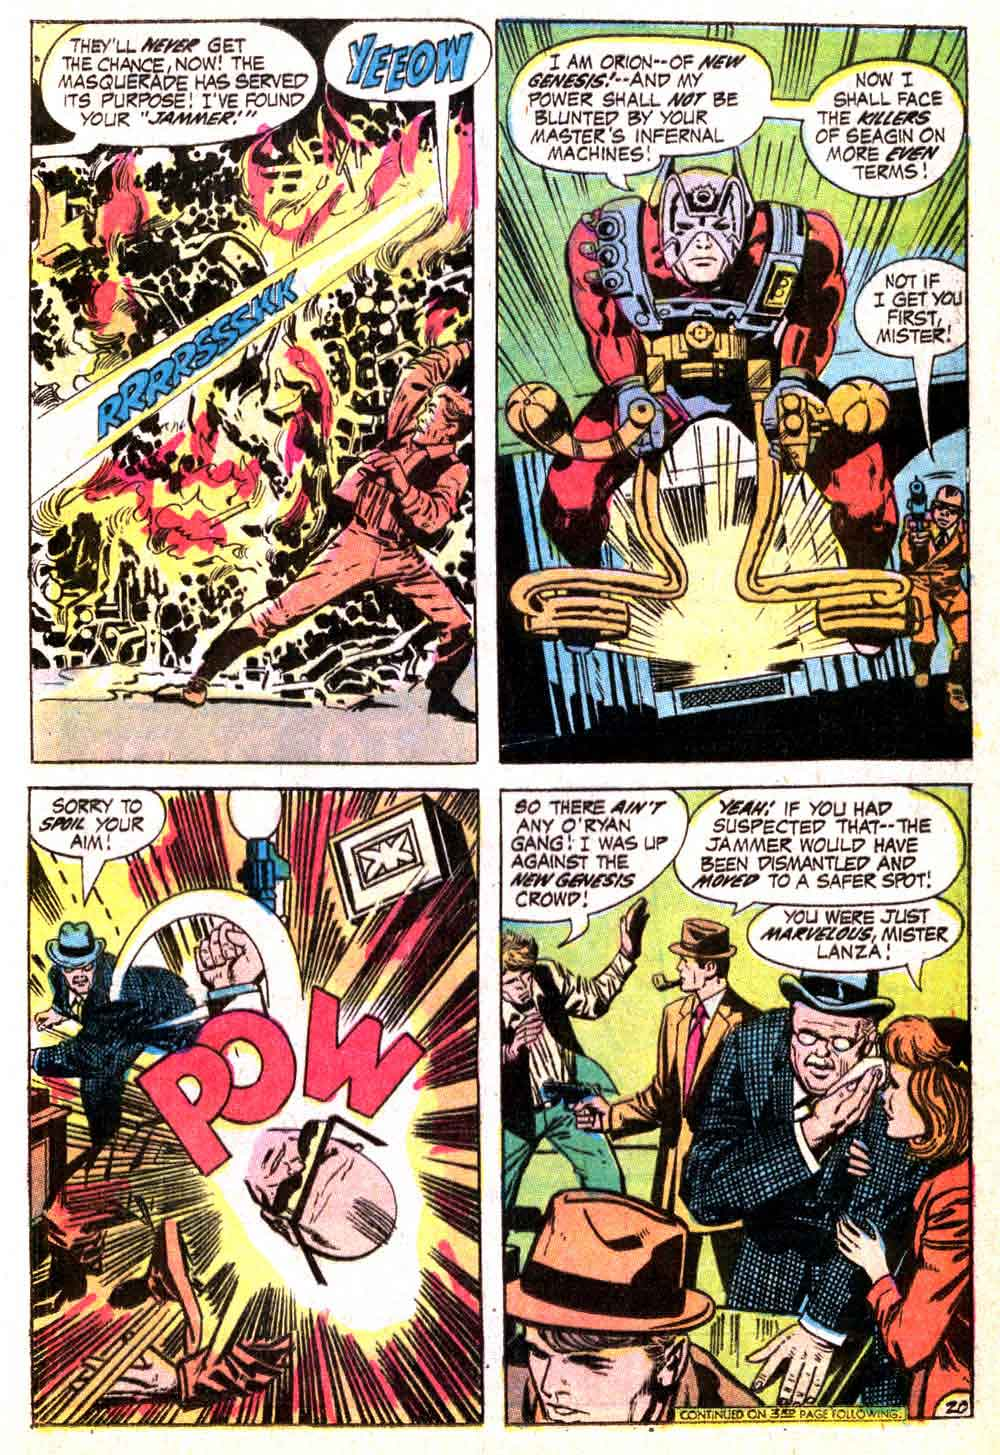 New Gods v1 #4 dc bronze age comic book page art by Jack Kirby